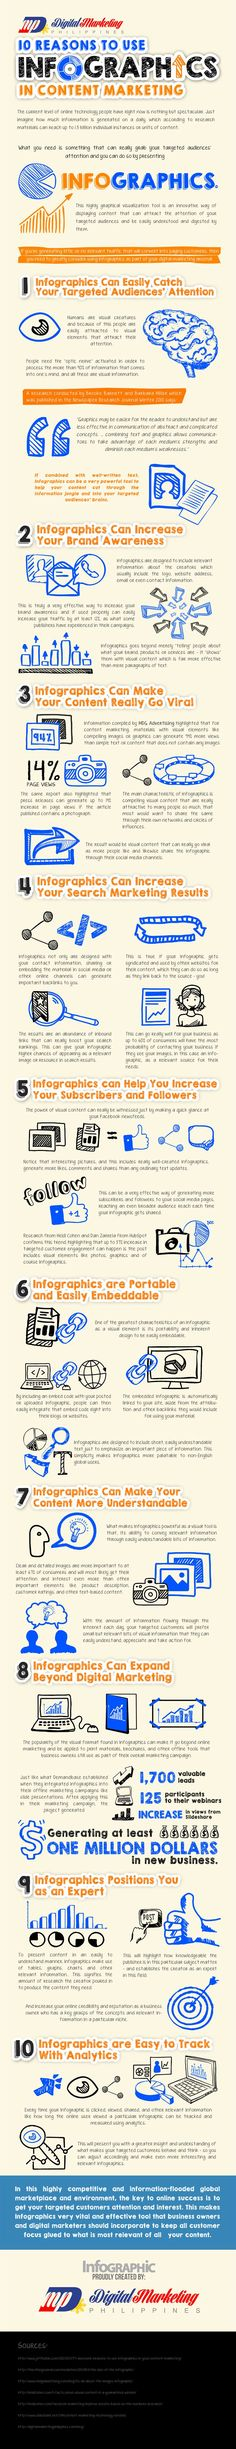 10 Reasons to Use Infographics in Content Marketing (Infographic) - #noodlenook